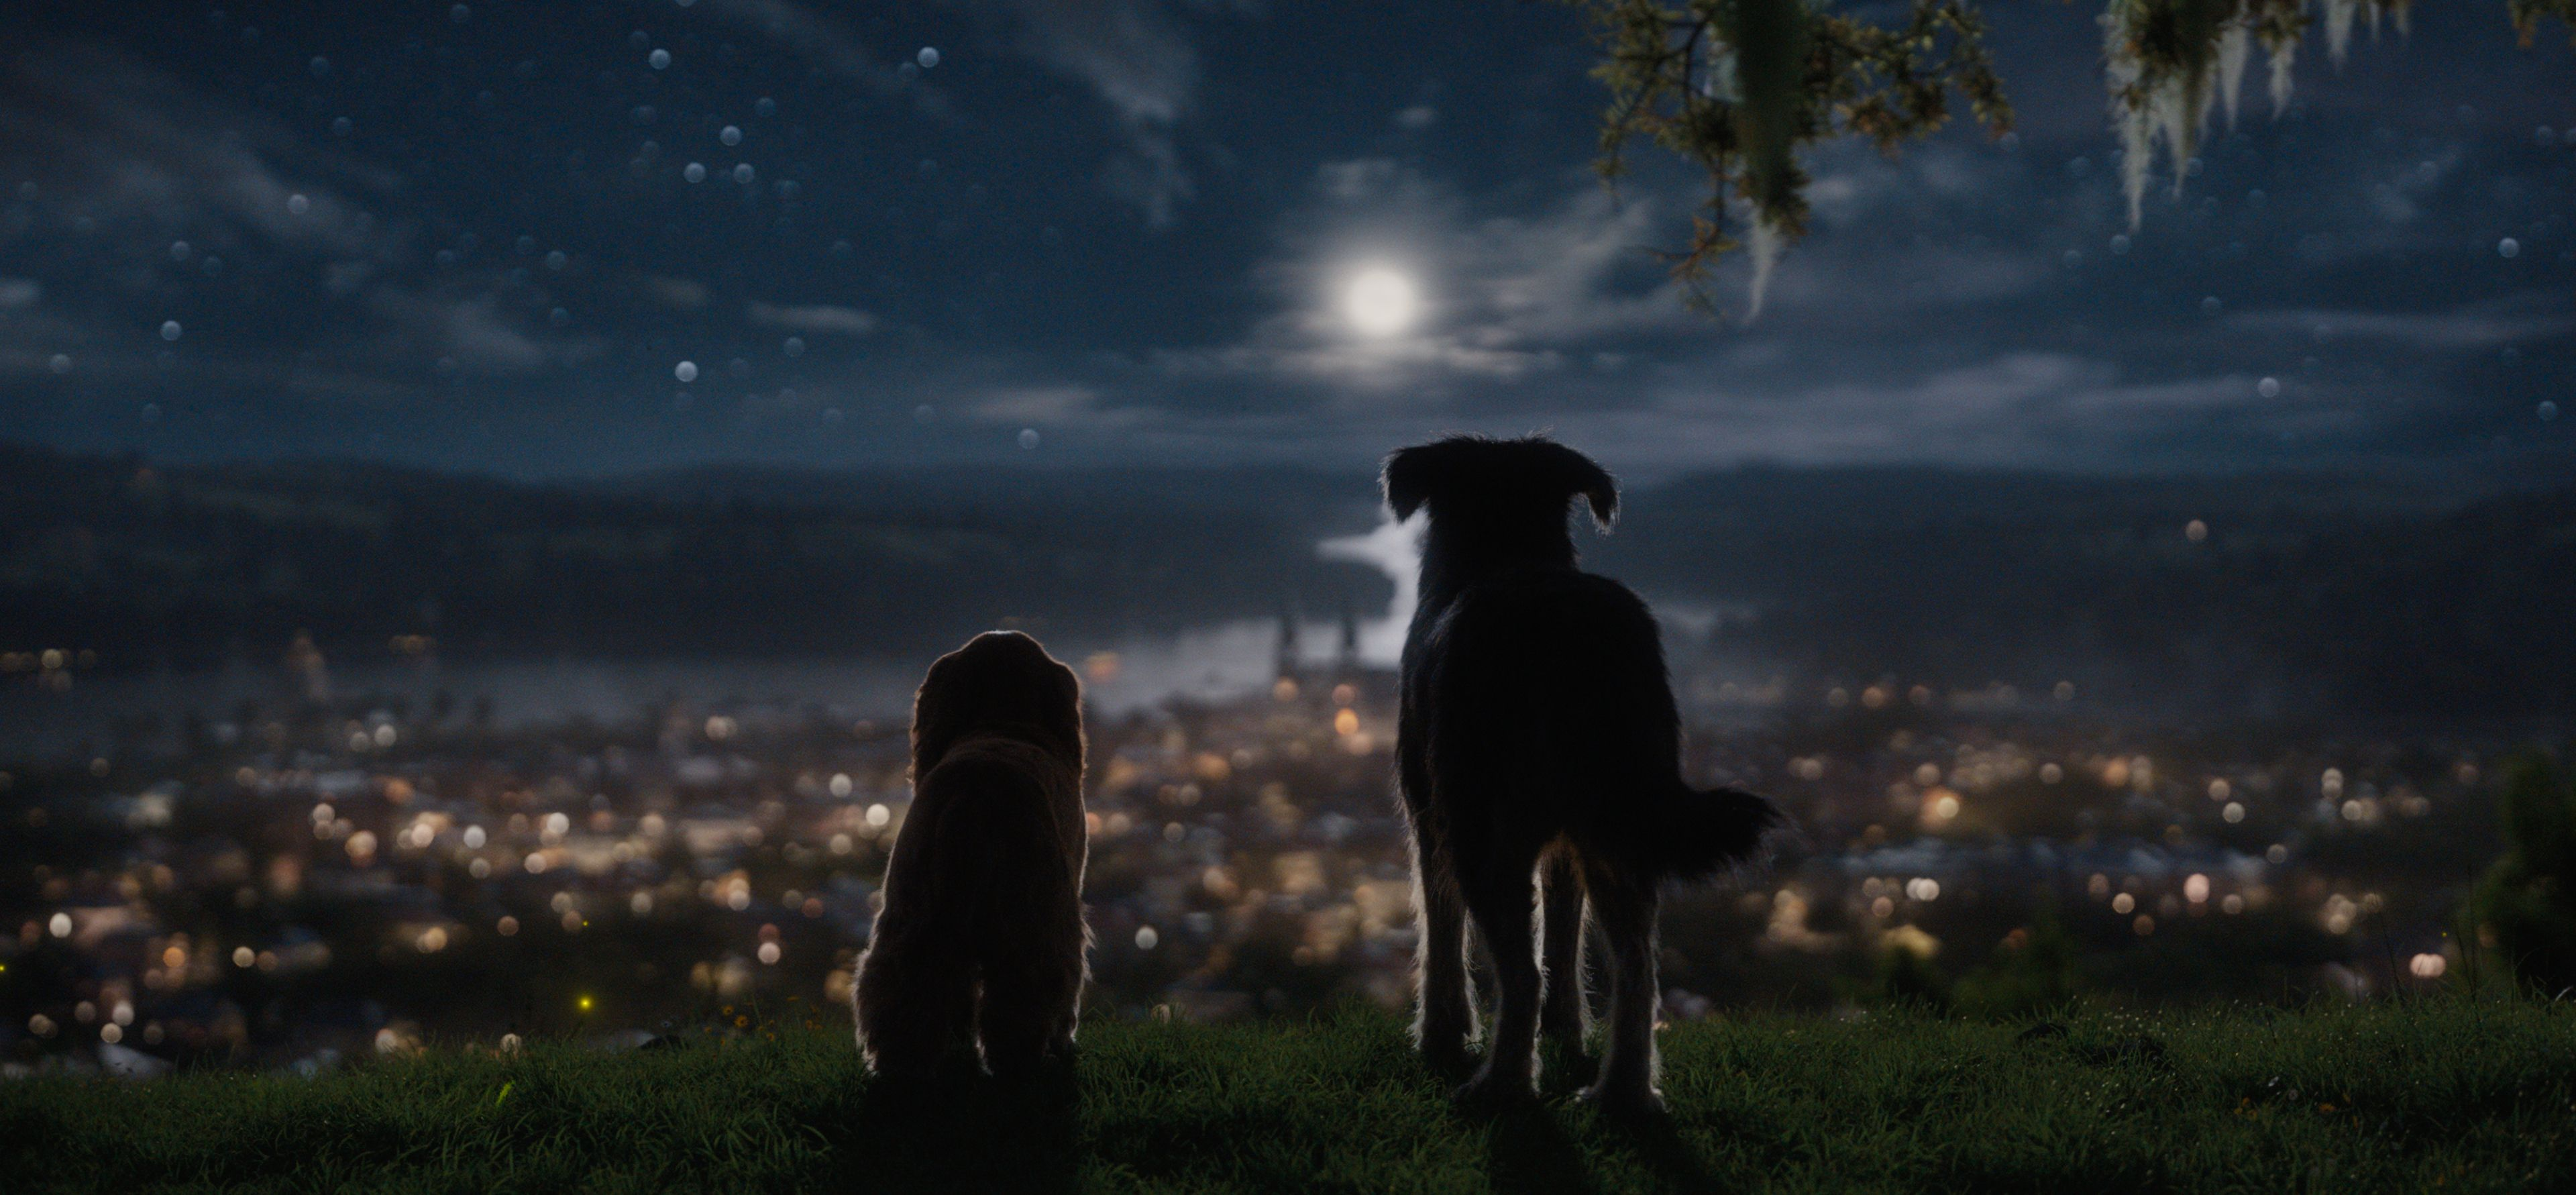 Lady And The Tramp Review An Inoffensive Remake For Disney Plus Collider